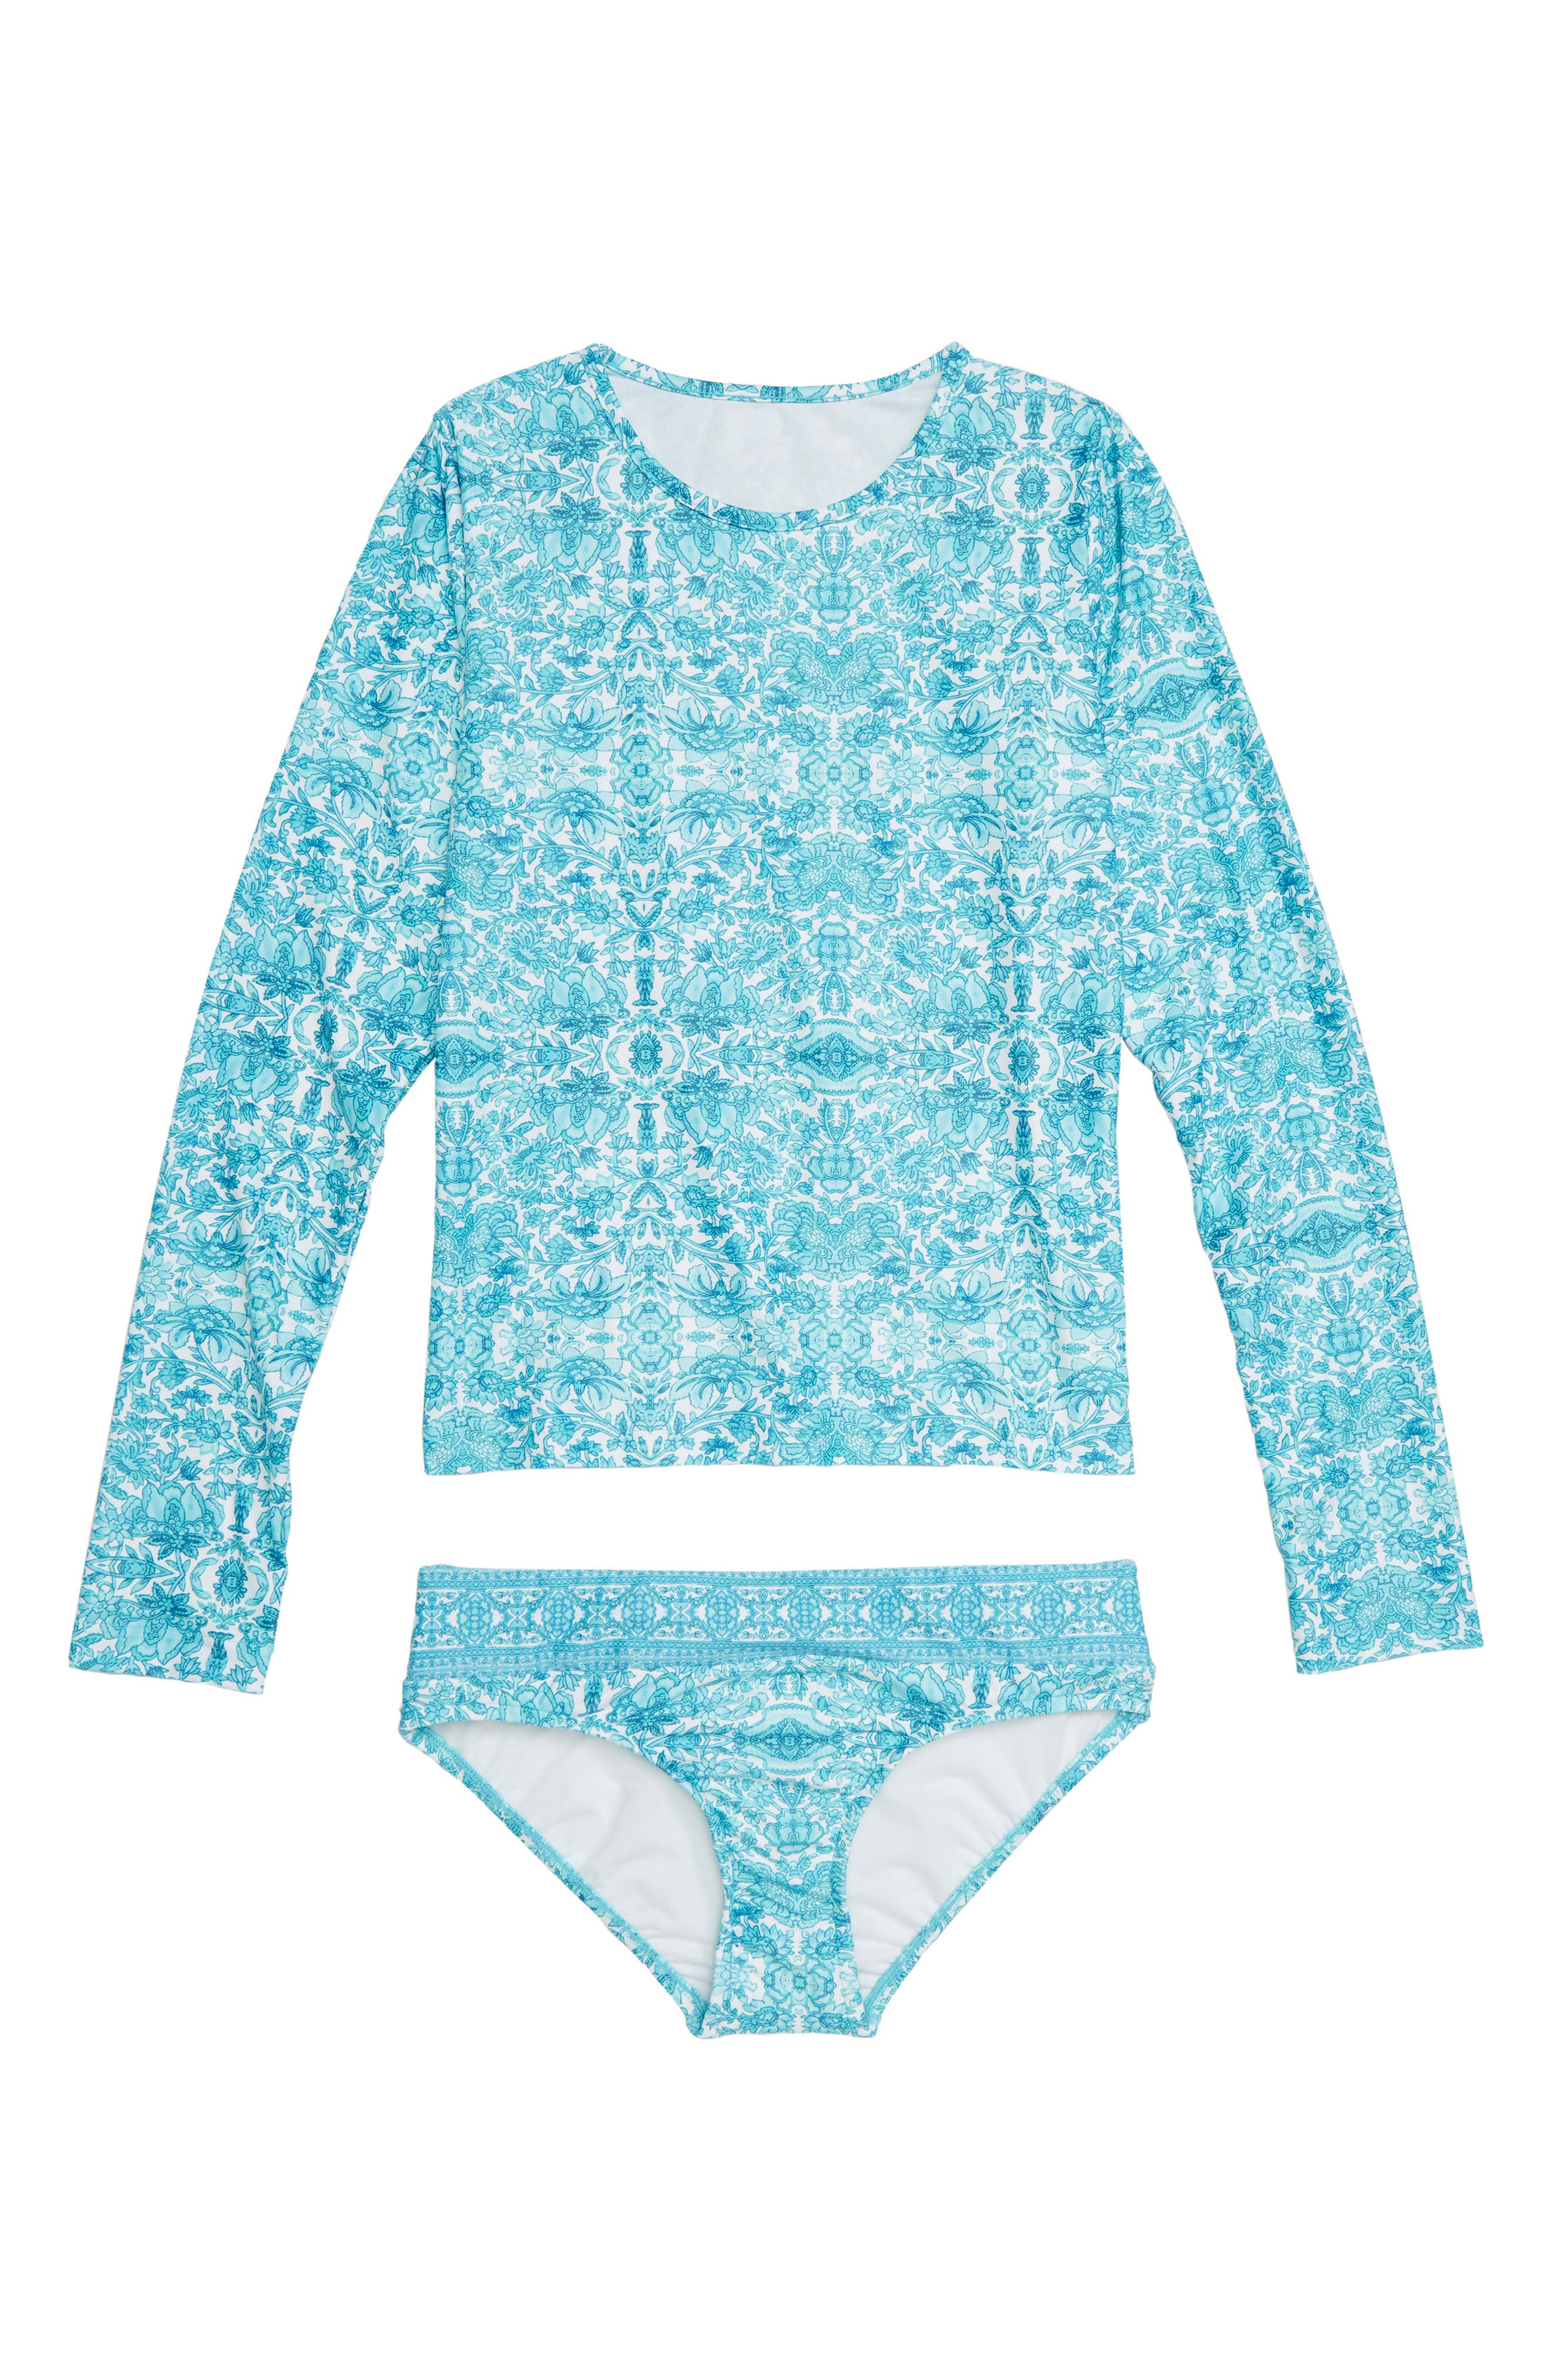 Ocean Tapestry Two-Piece Rashguard Swimsuit,                             Main thumbnail 1, color,                             400